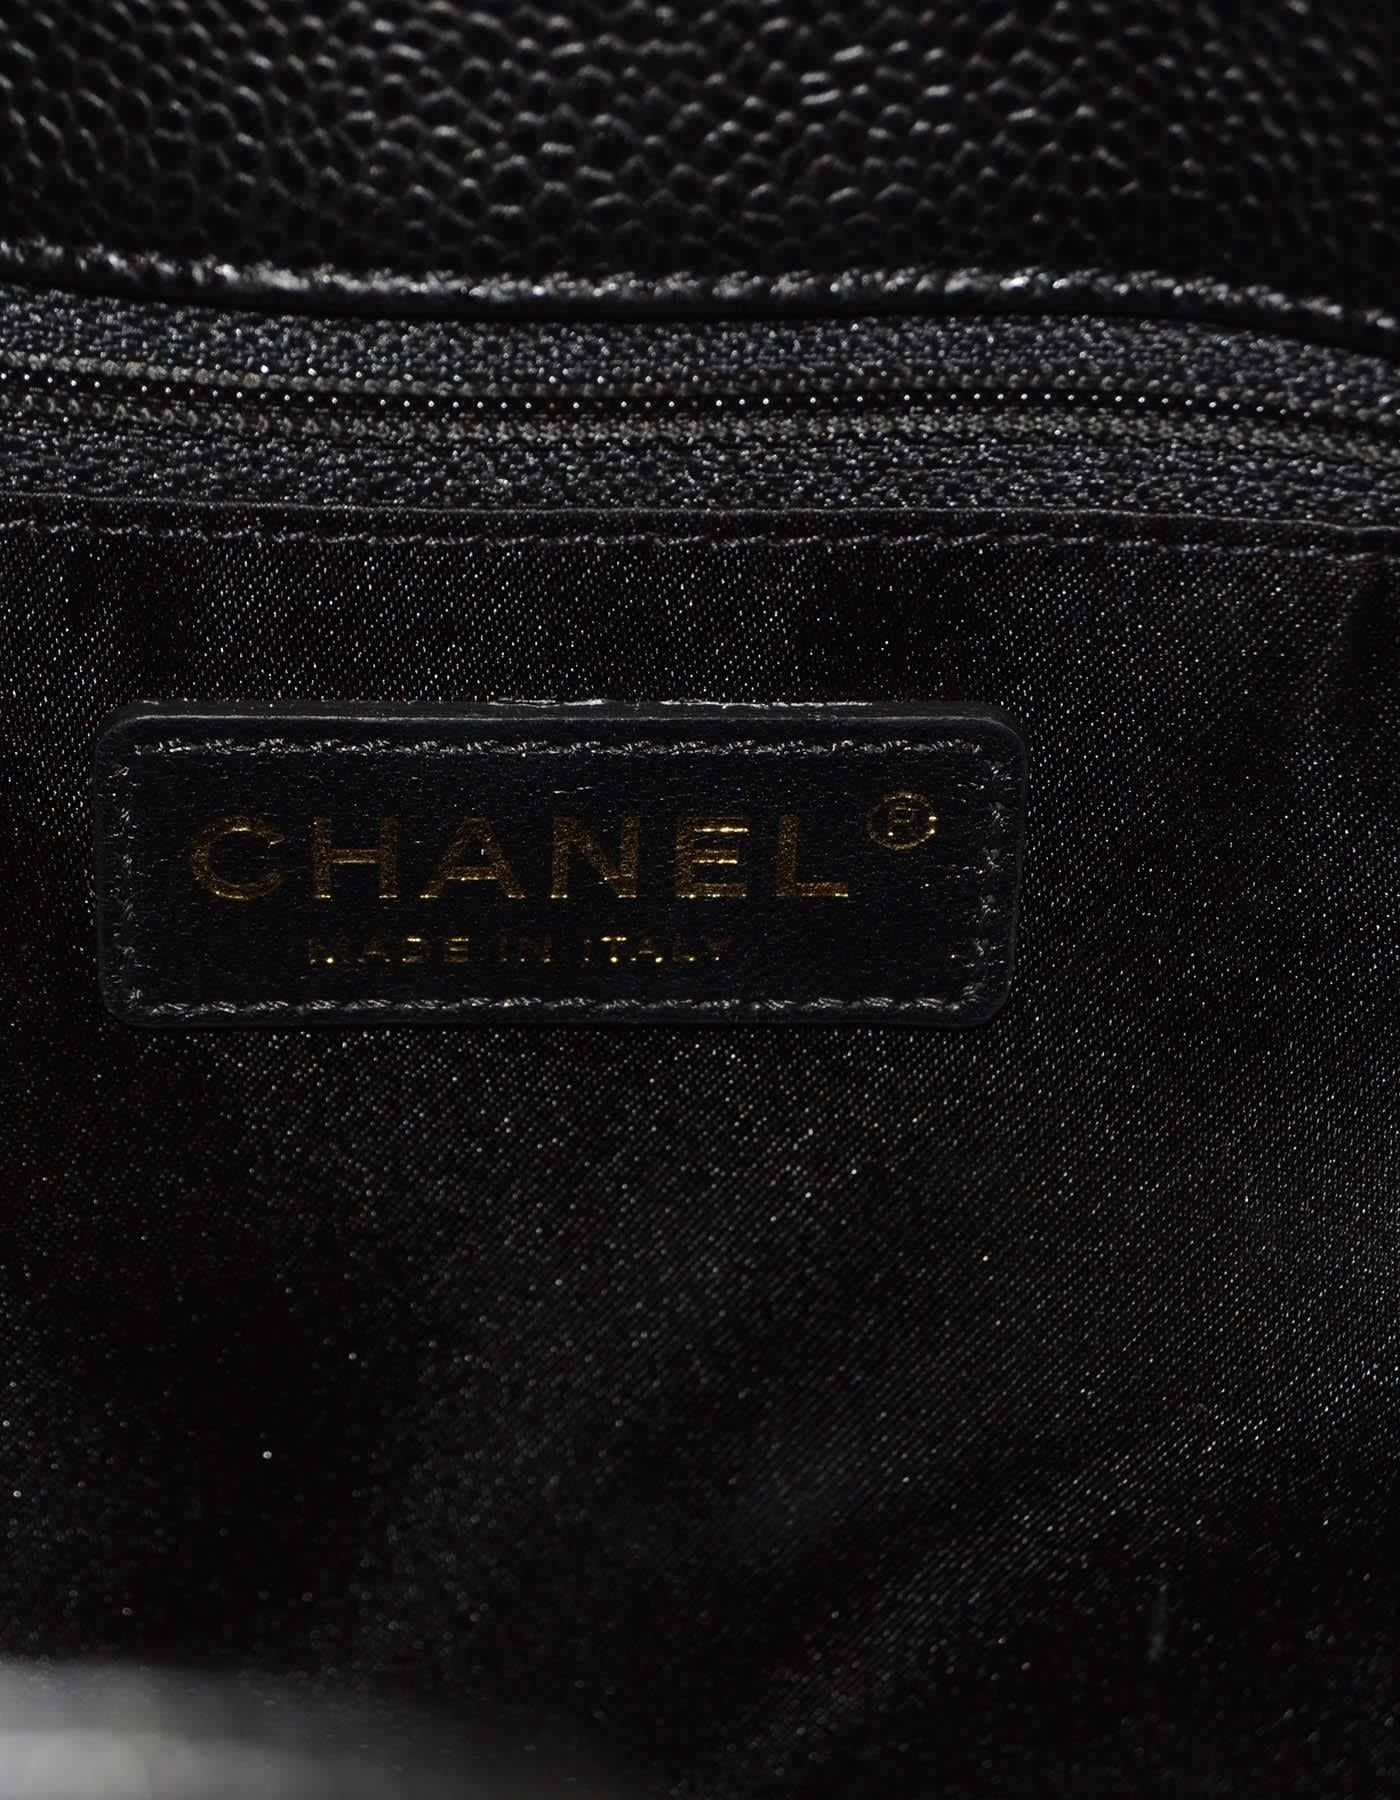 09c4ab5a3892f0 Chanel NEW Black Caviar Leather Petite Shopper Tote Bag PST GHW For Sale at  1stdibs